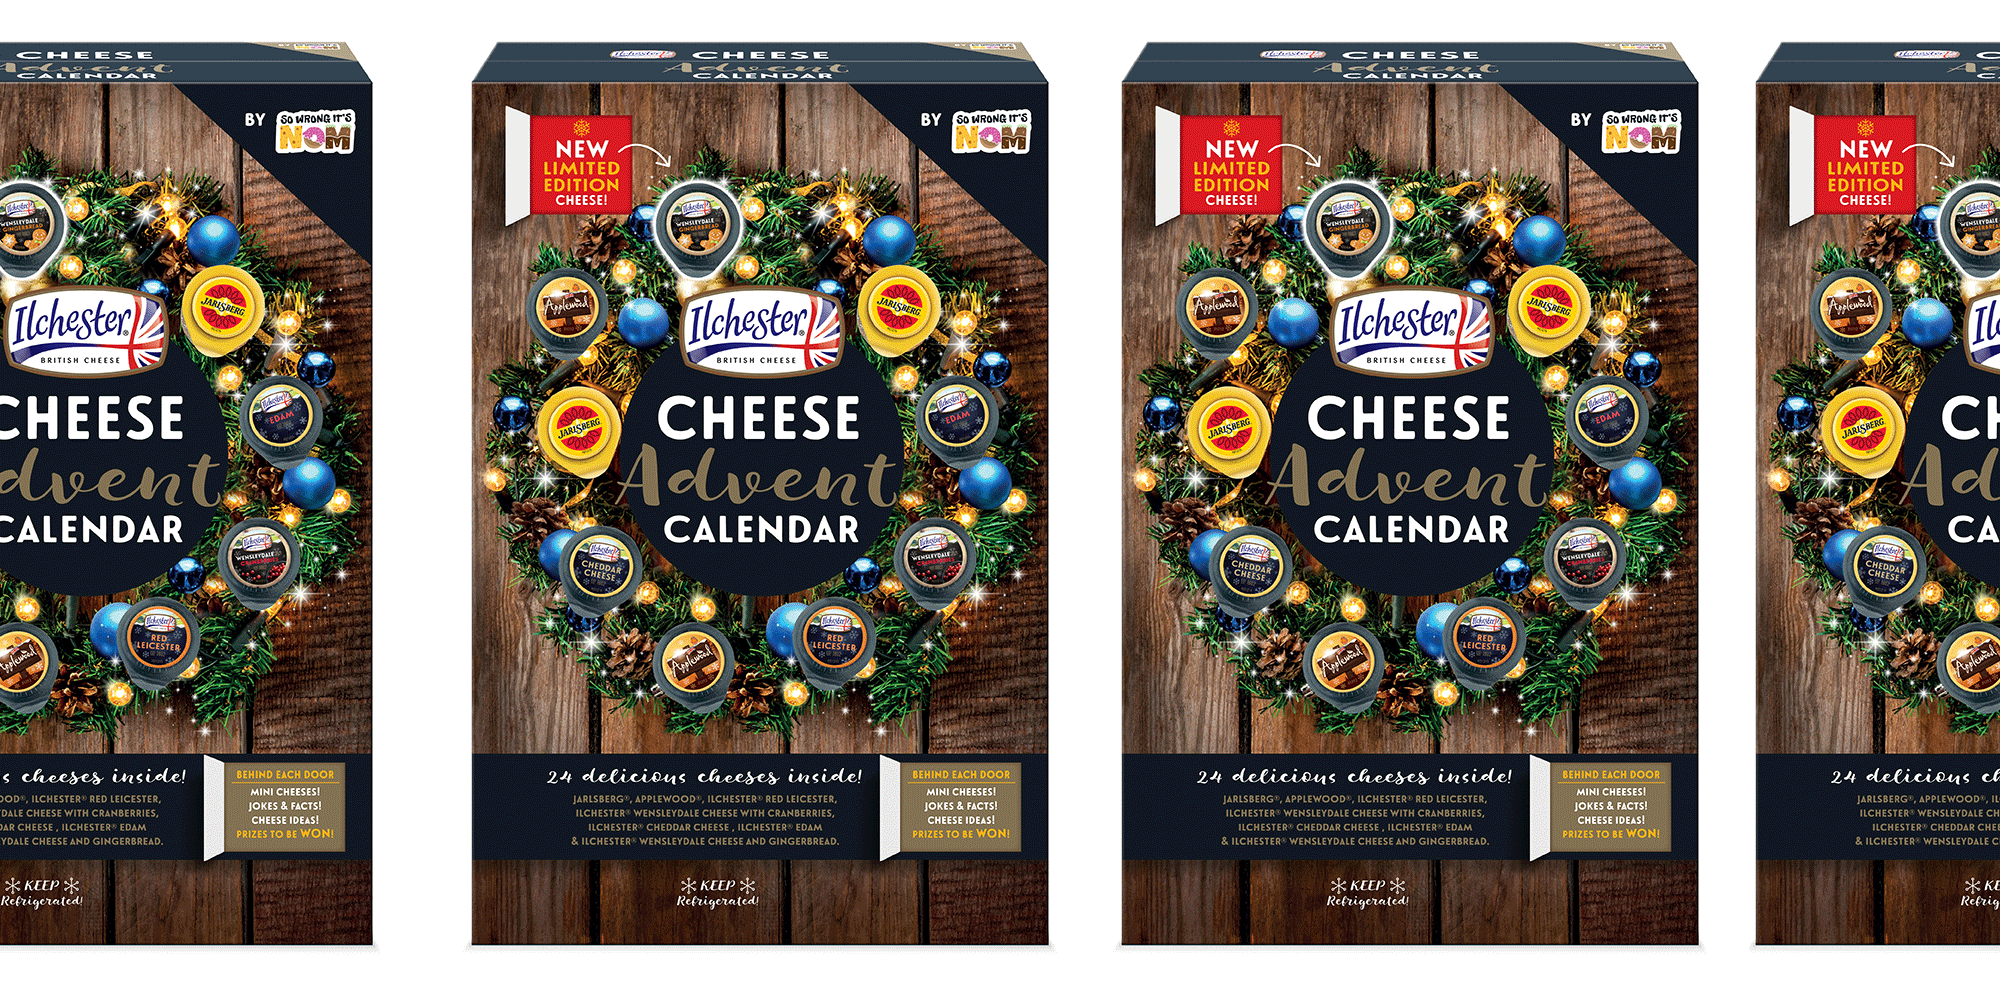 Cheese Advent Calendar 2020 Sainsbury's launches a cheese advent calendar for 2018, and we can